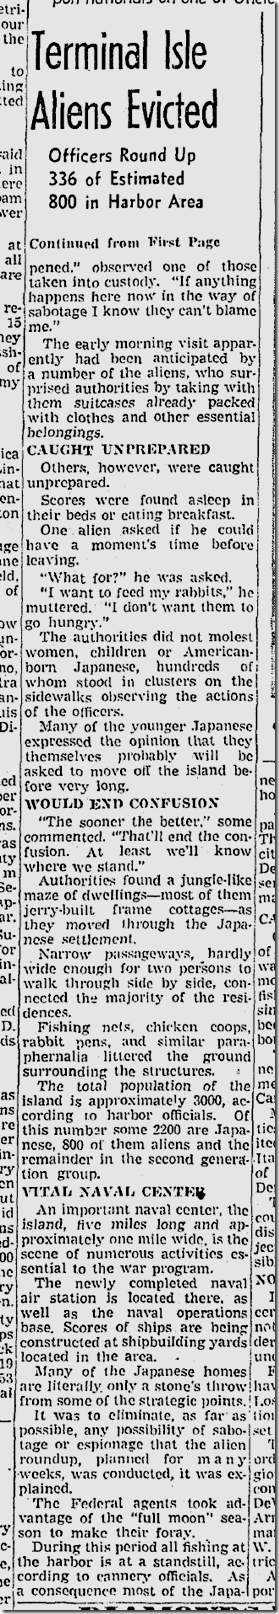 Feb. 3, 1942, Japanese Evictions